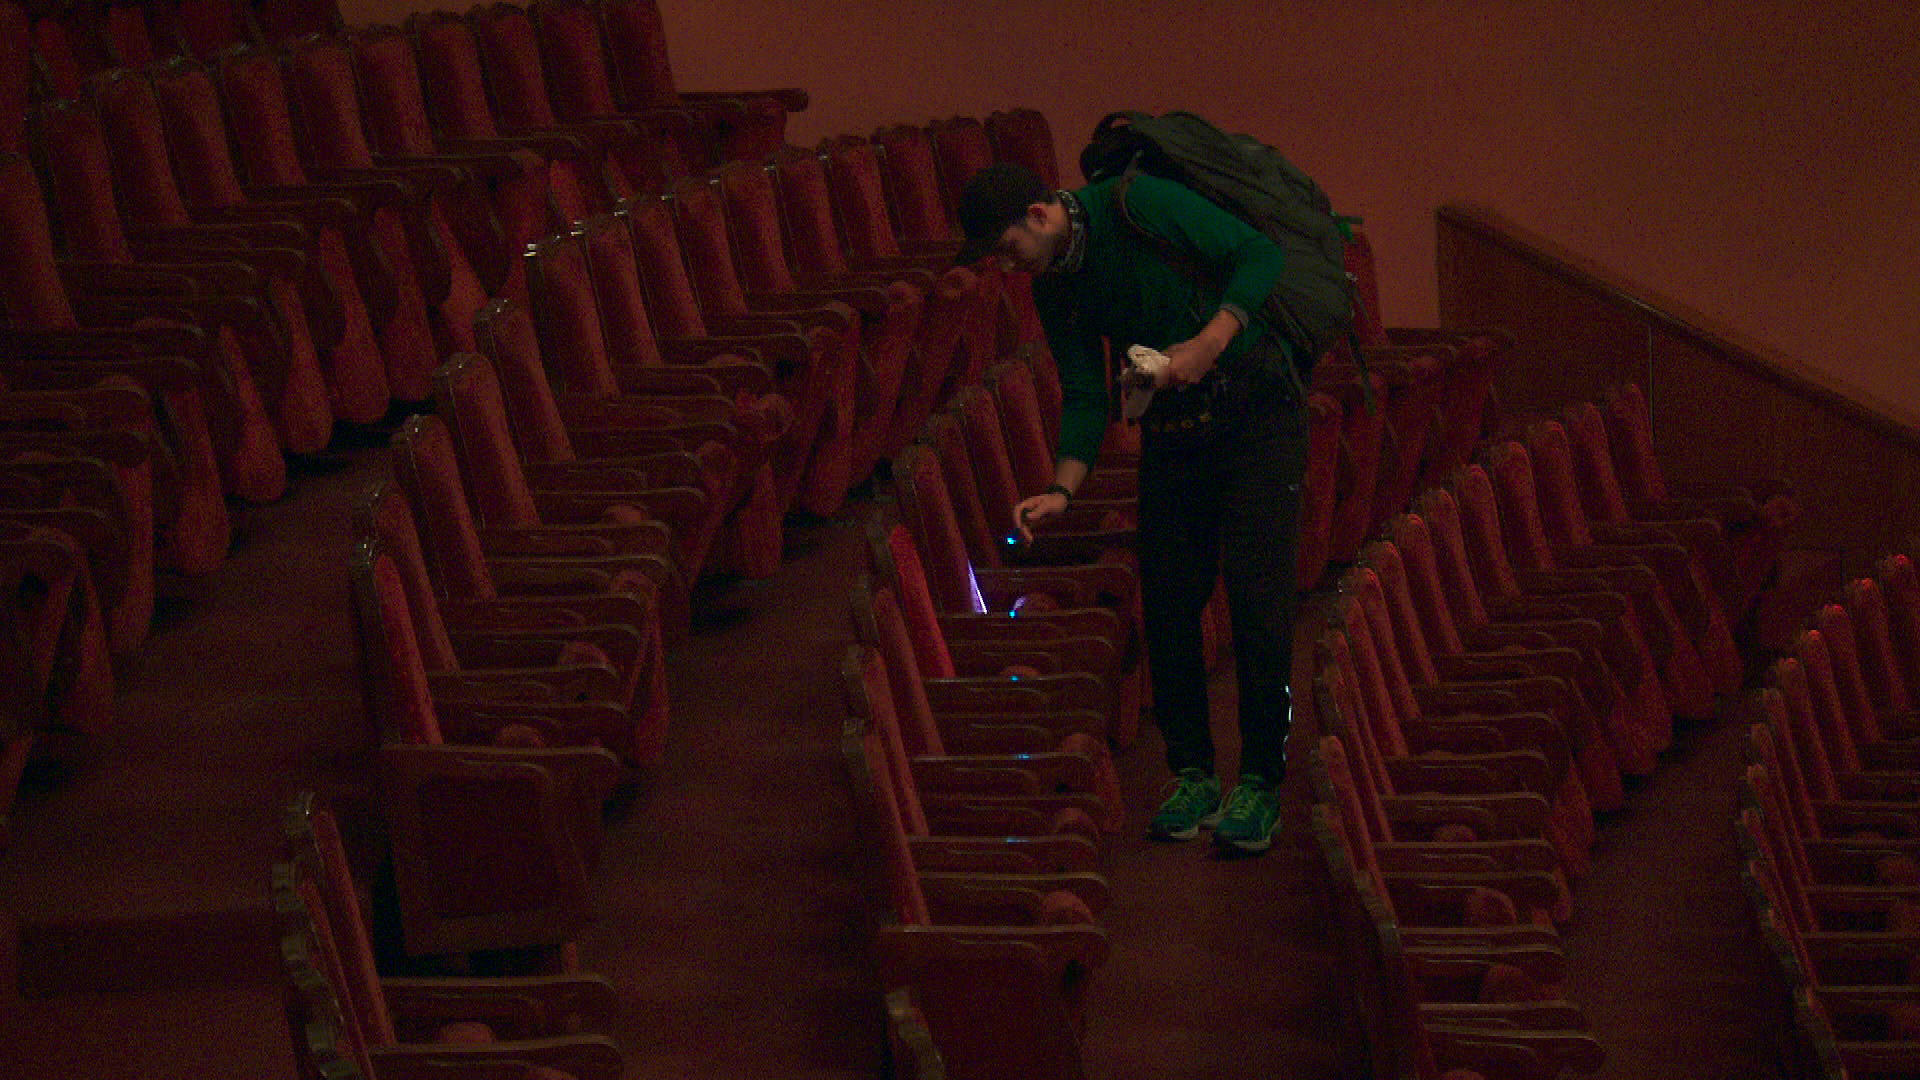 Korey searches for a clue at the Yerevan Opera Theater.